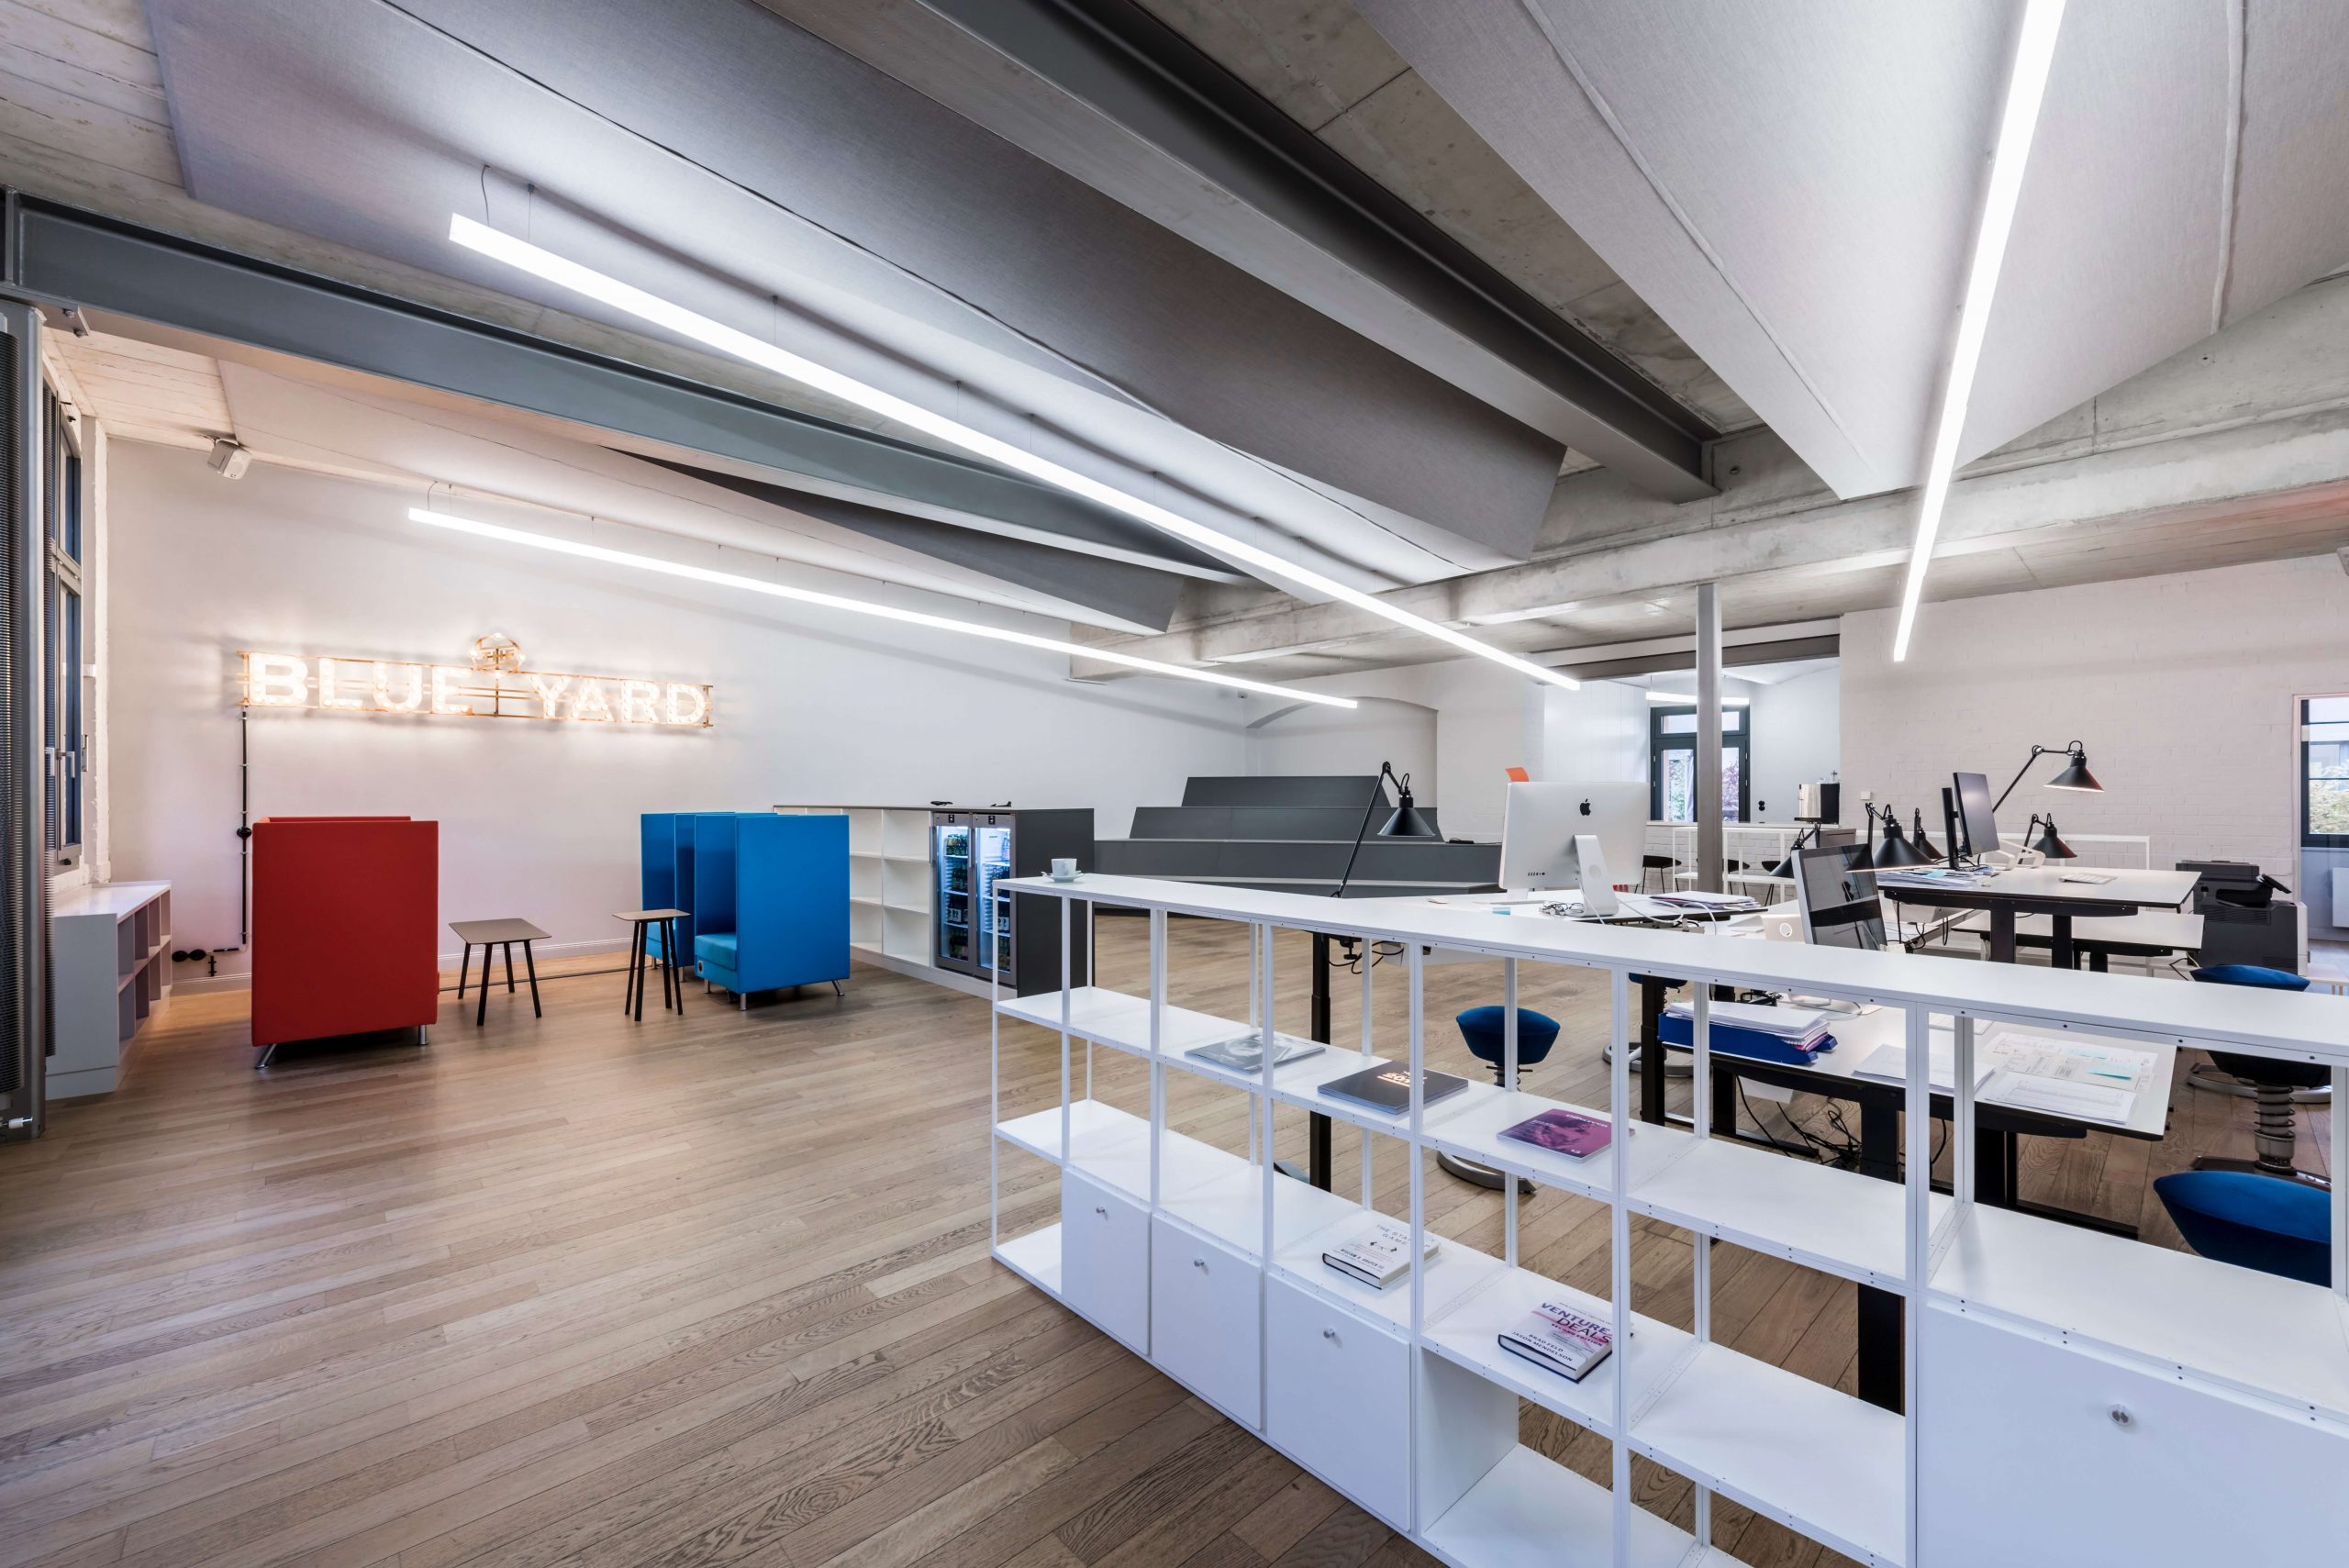 Workspace Design Blue Yard Berlin TKEZ Architekten Open Office